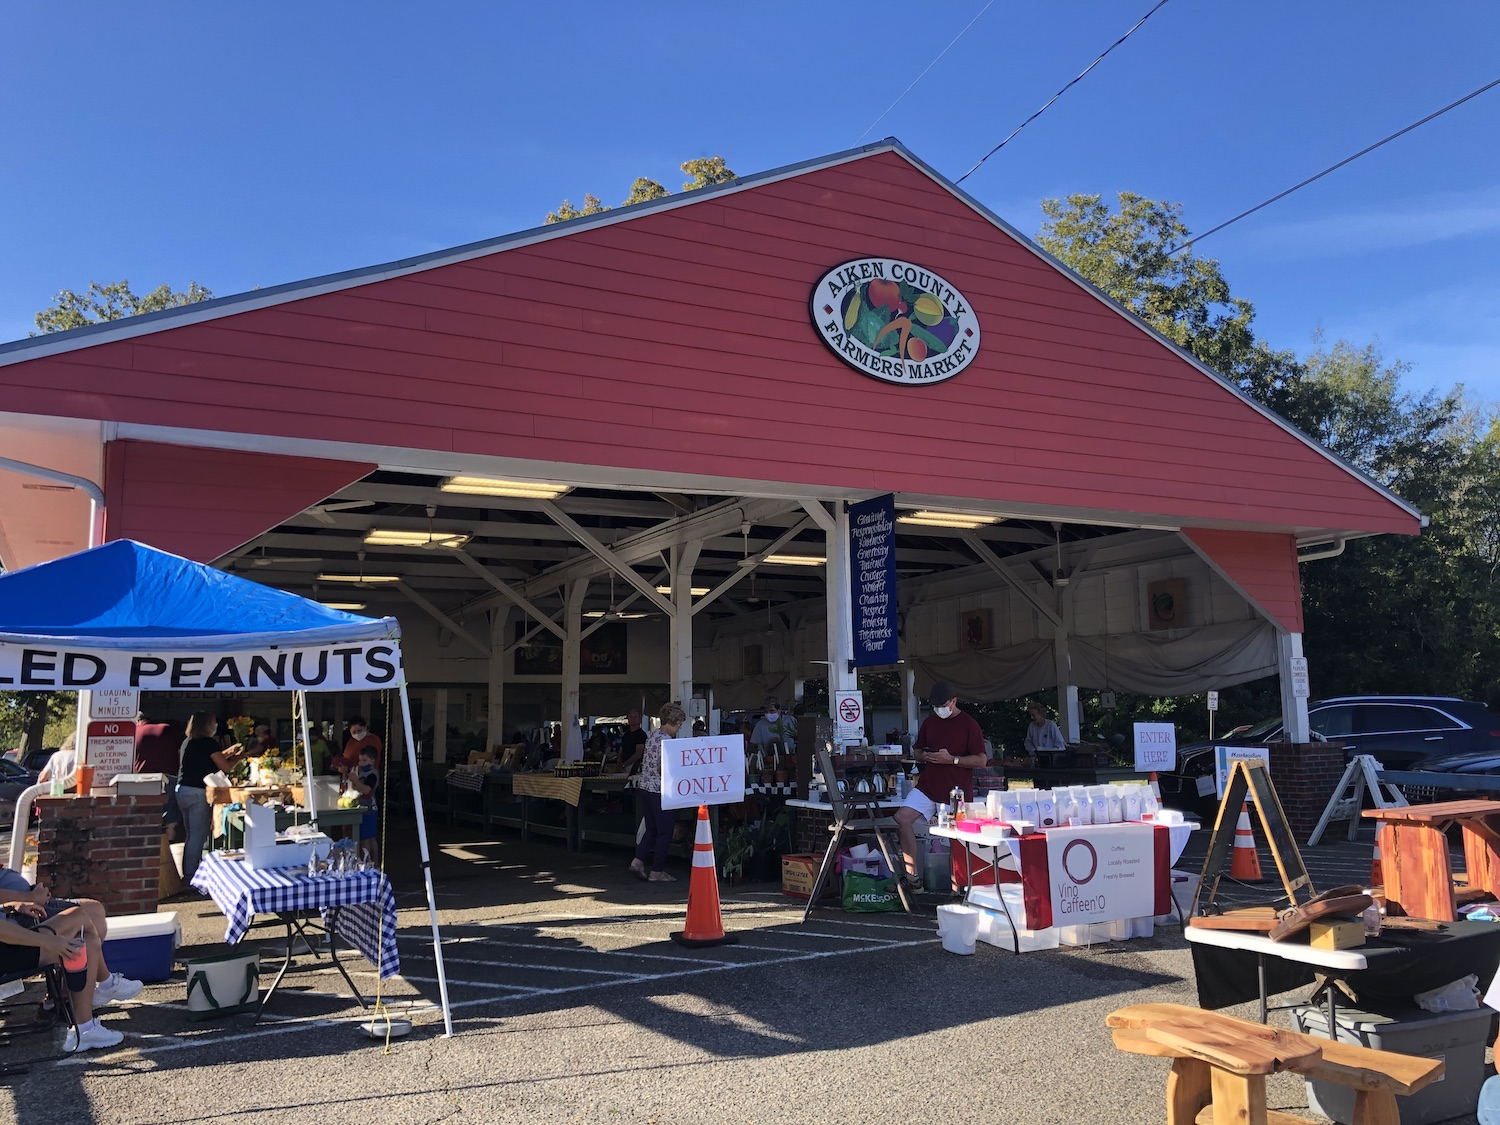 The farmers market is one of the best things to do in Aiken in December 2020.